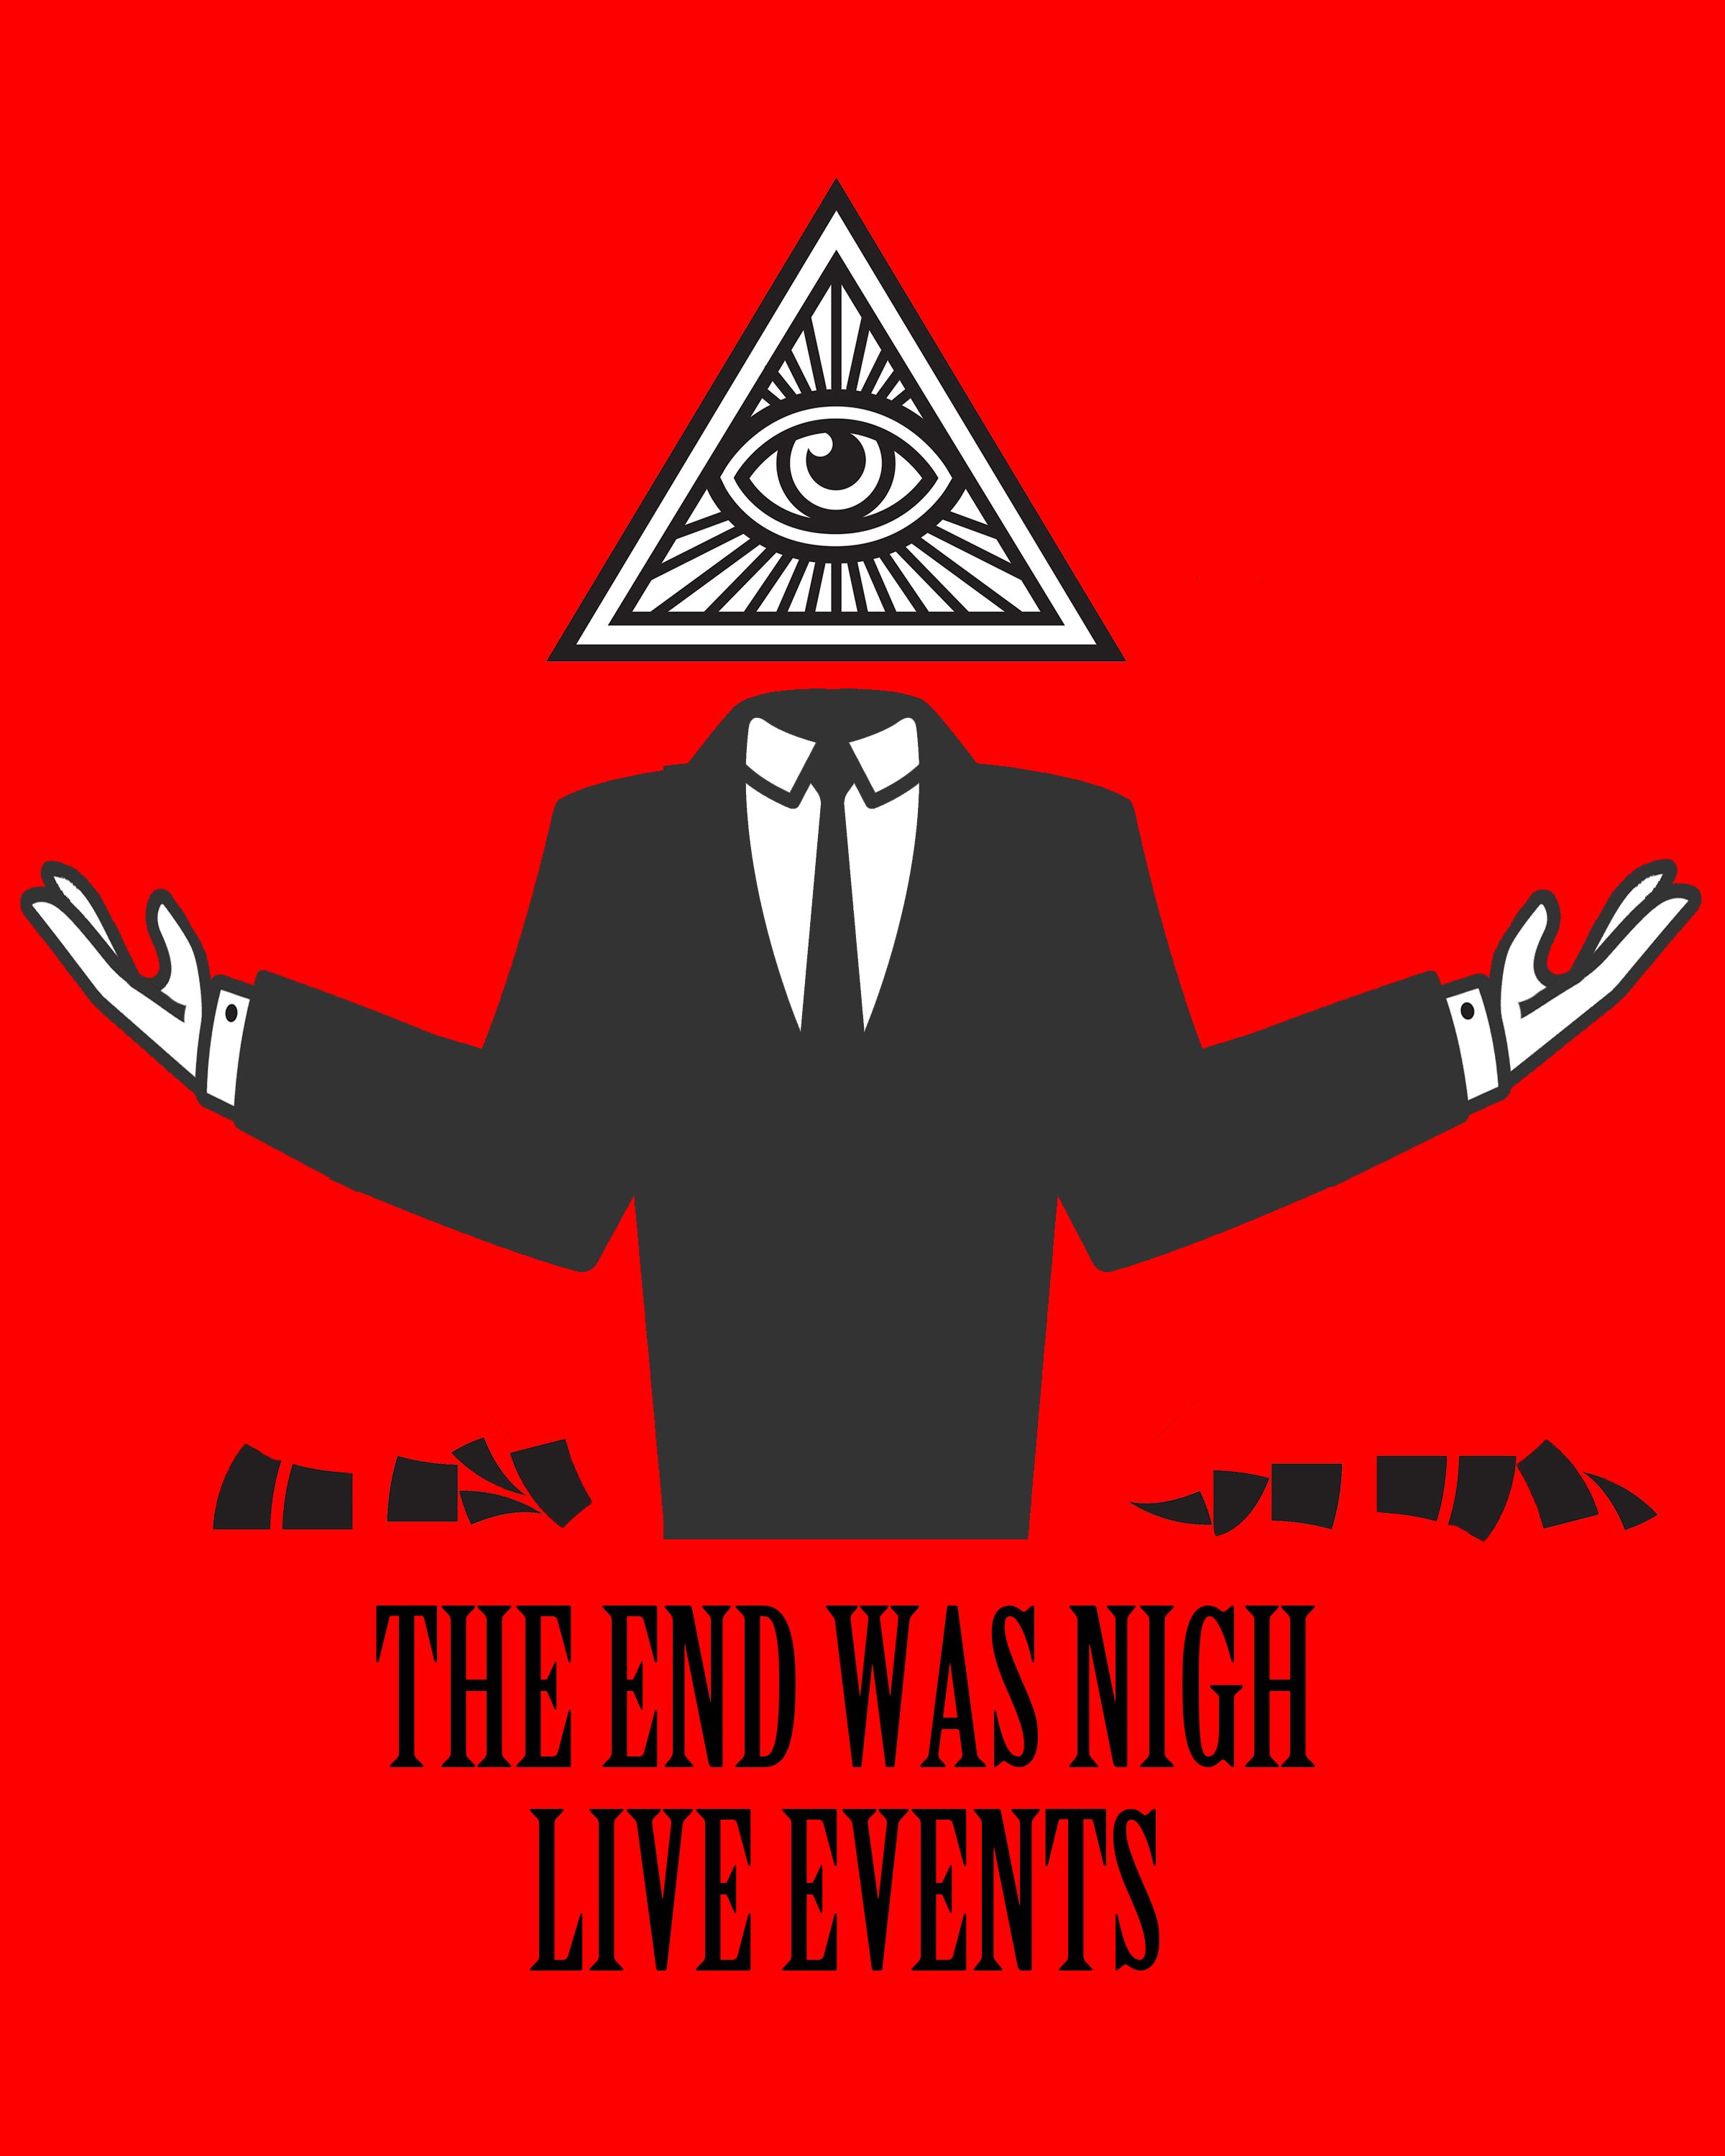 The End Was Nigh Live Events.jpg